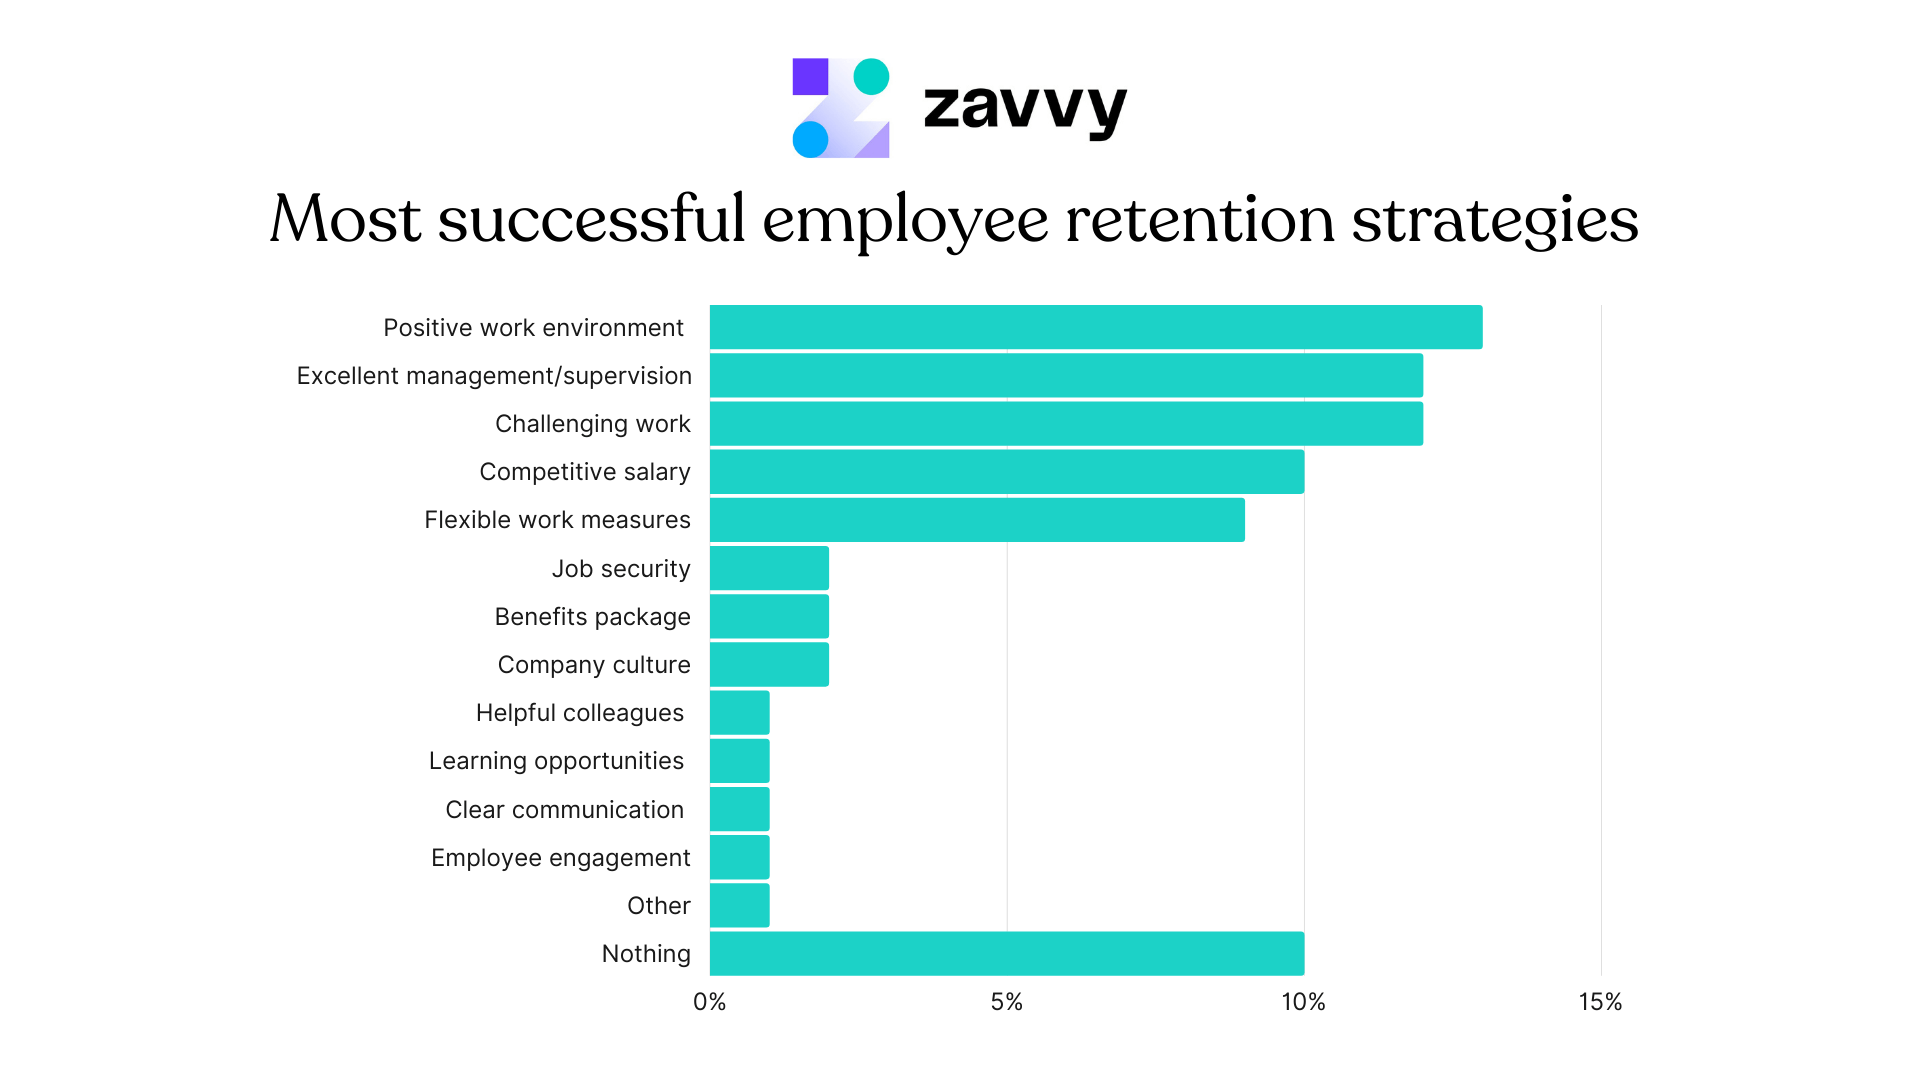 Most successful employee retention strategies: Positive work environment, management, and challenging work are top - before salary